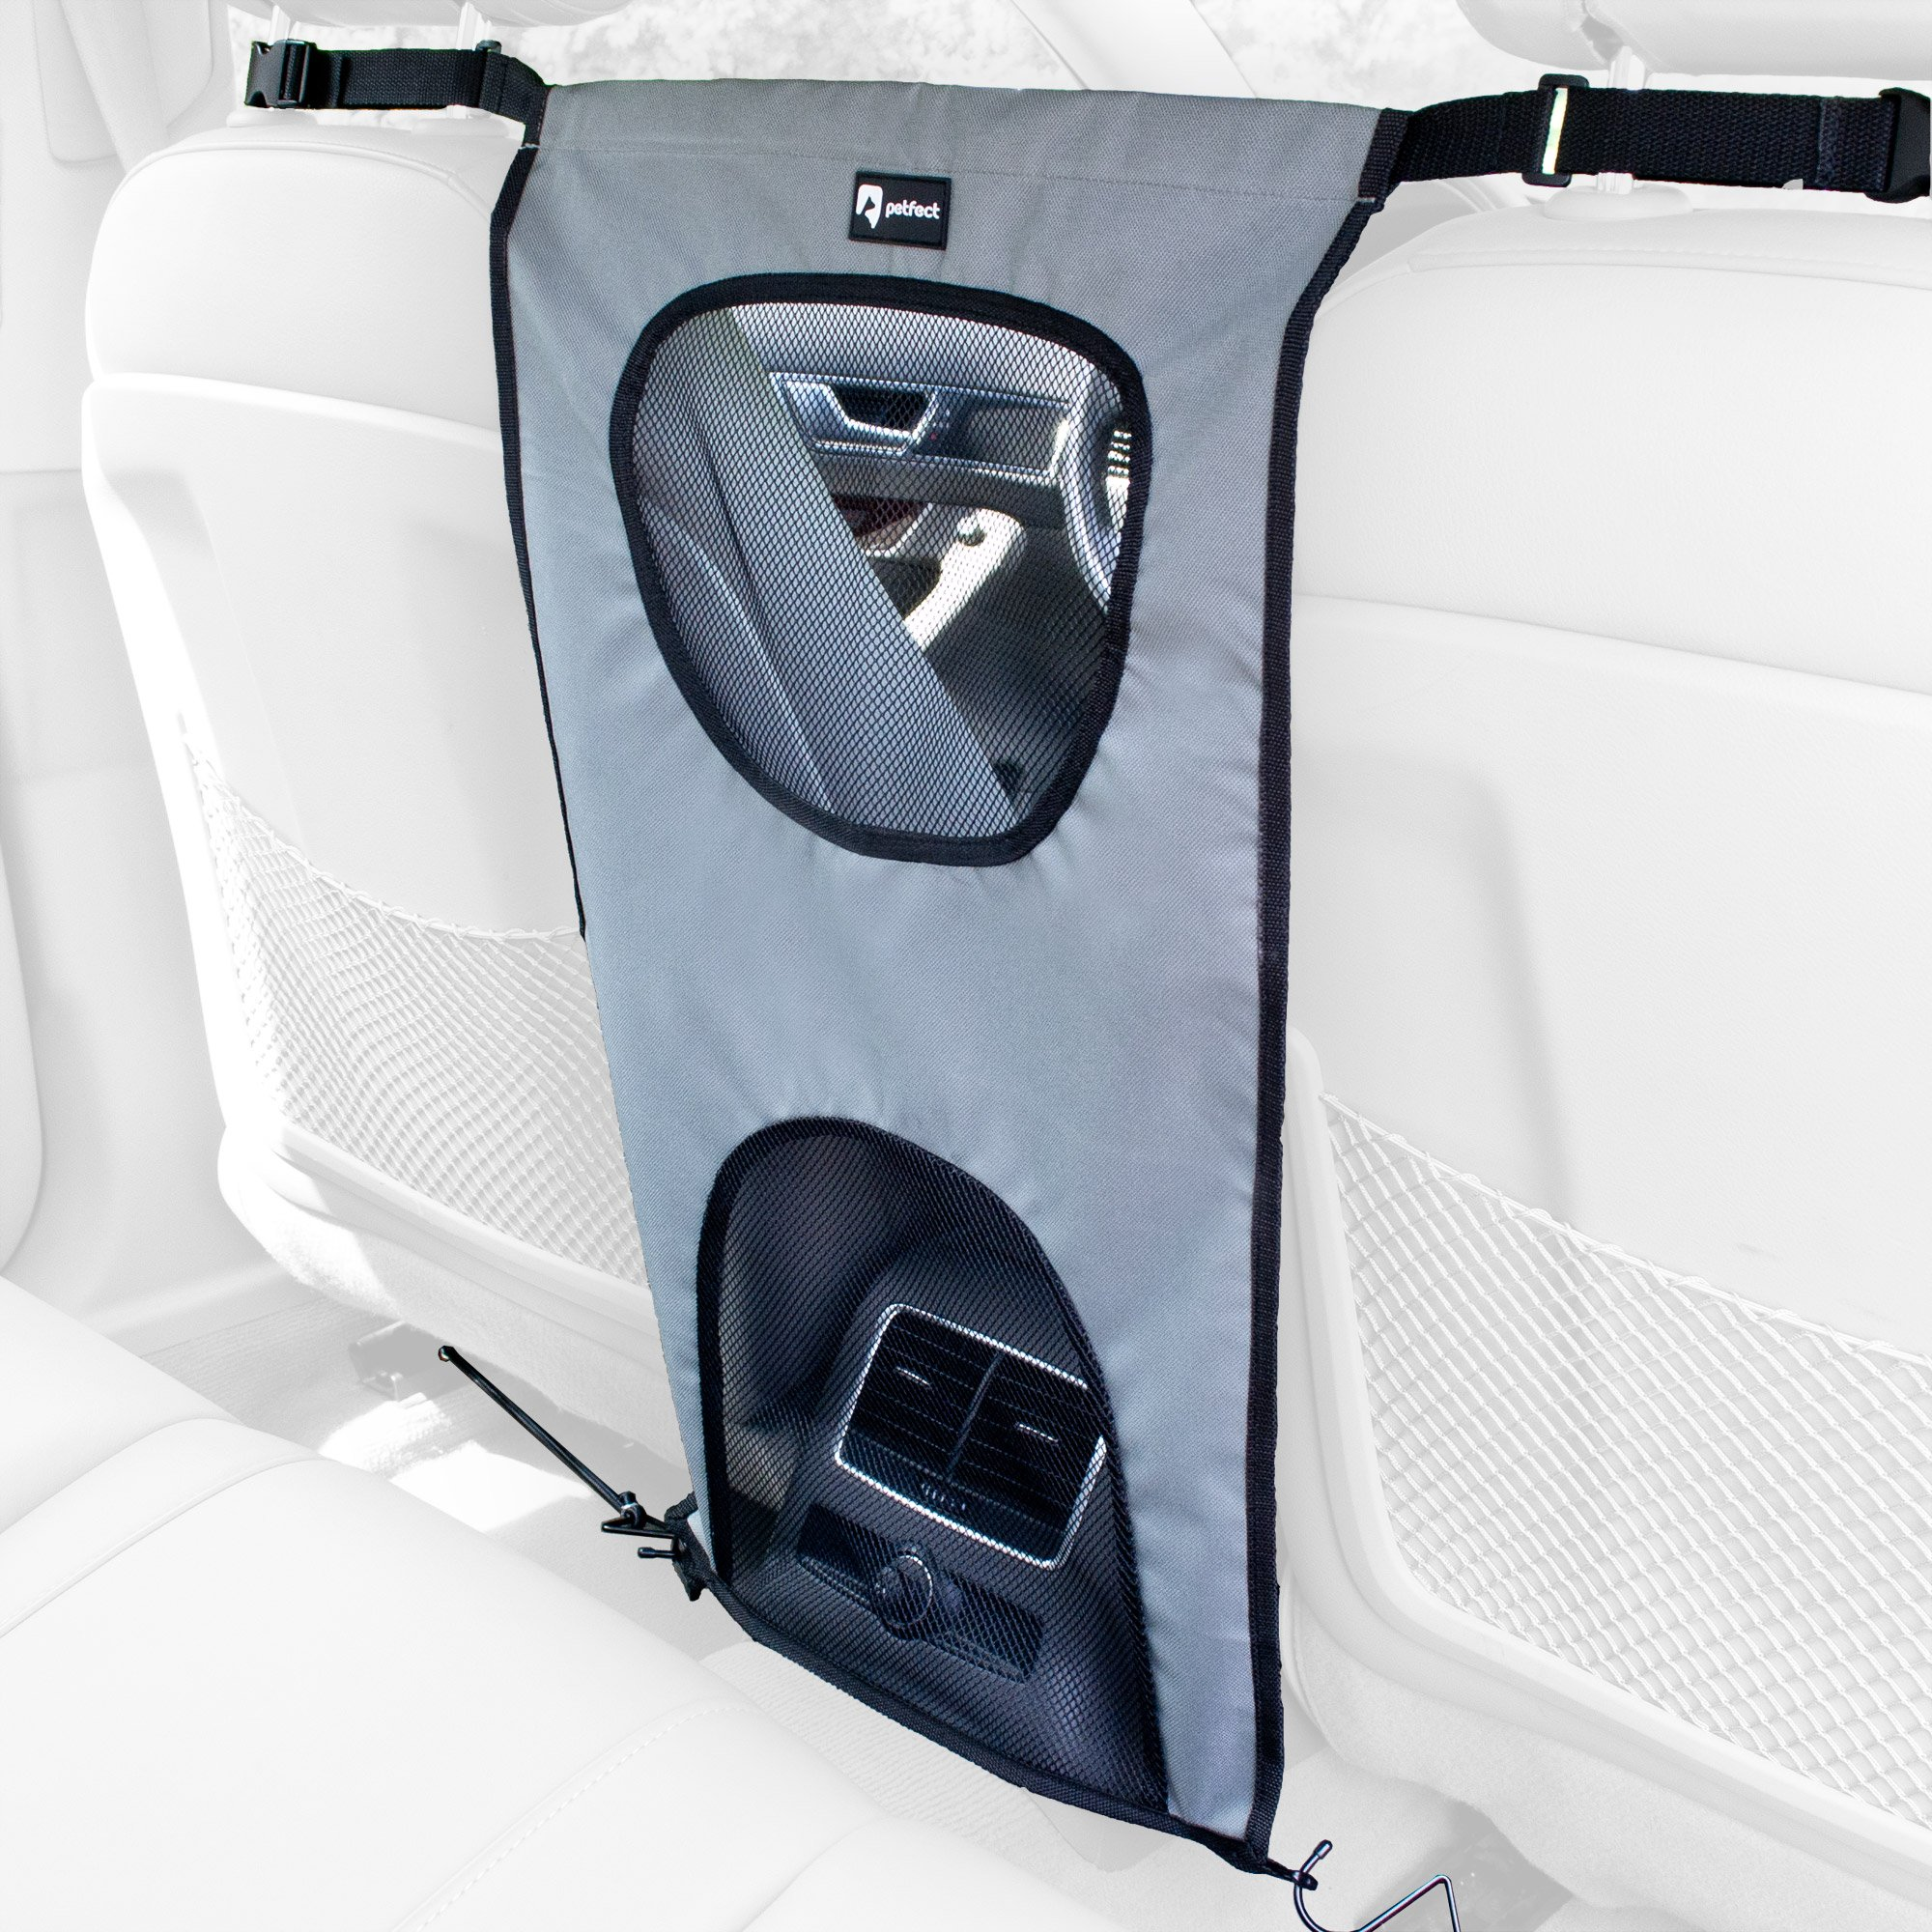 PETFECT Dog Car Back Seat Barrier - Lightweight, Durable & Perfect for Pets w/Upper Eye-Contact Net (Grey) by PETFECT